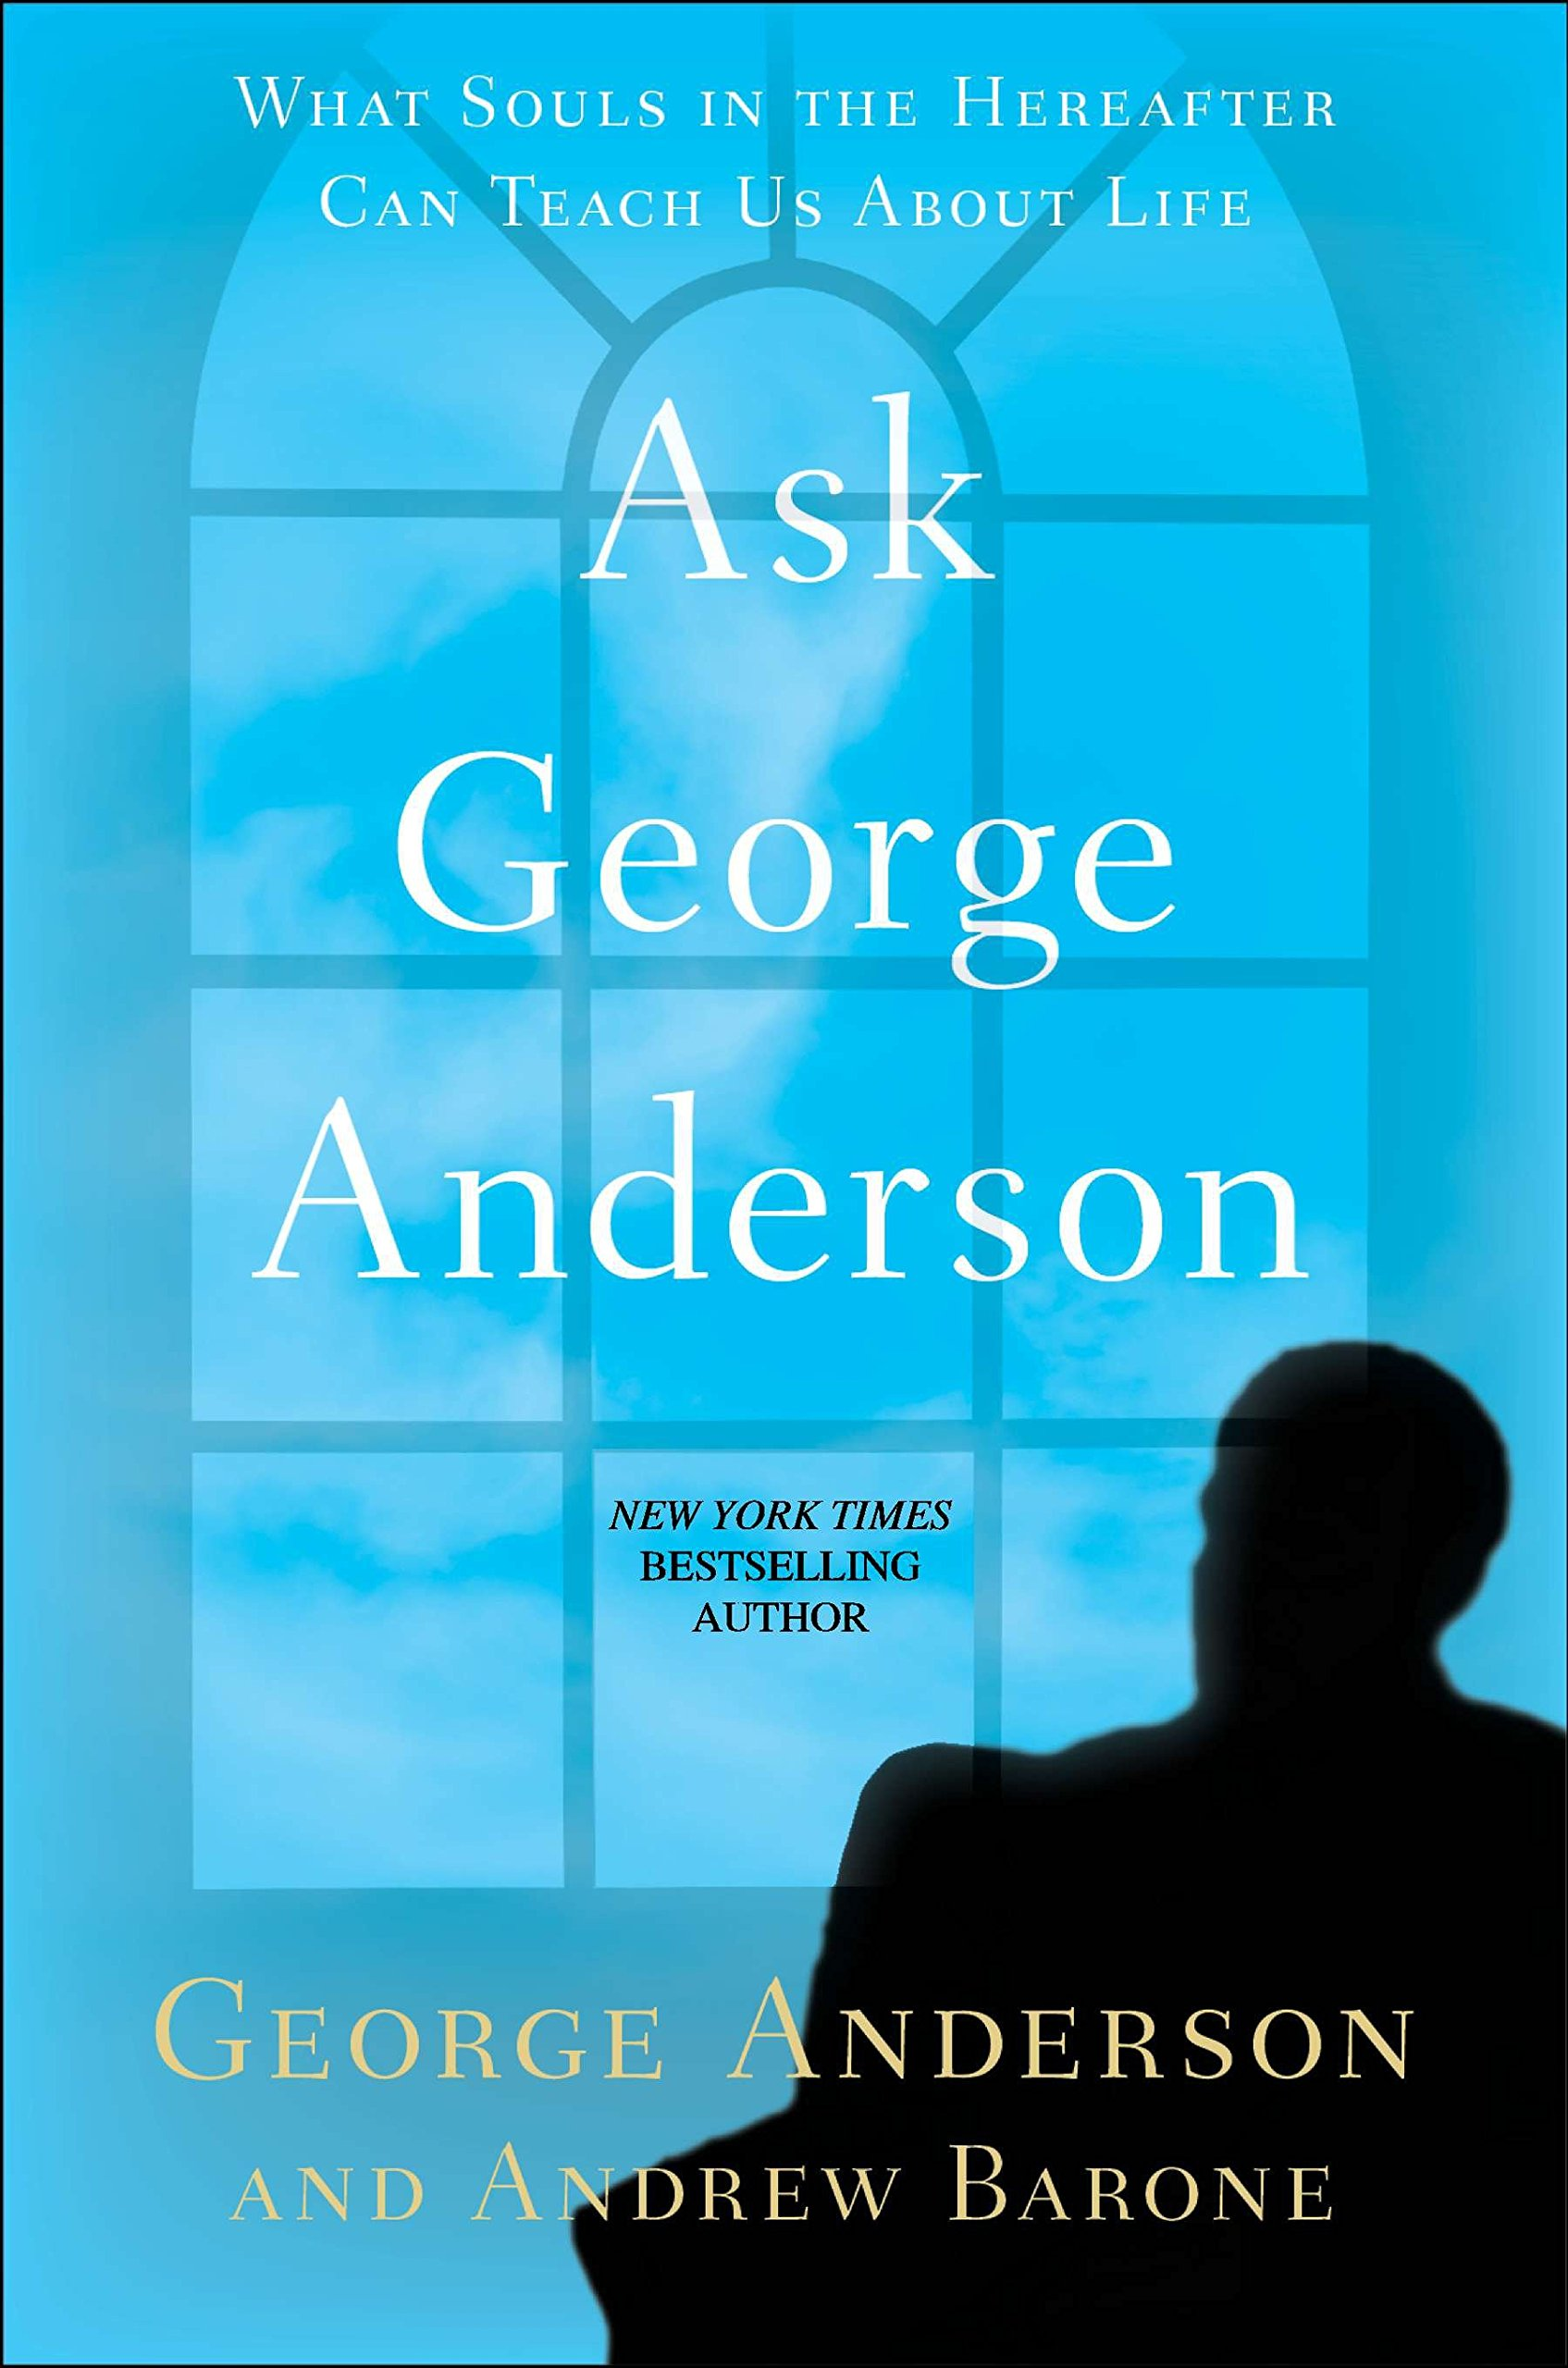 Ask George Anderson: What Souls in the Hereafter Can Teach Us About Life:  George Anderson, Andrew Barone: 9780425247280: Amazon.com: Books